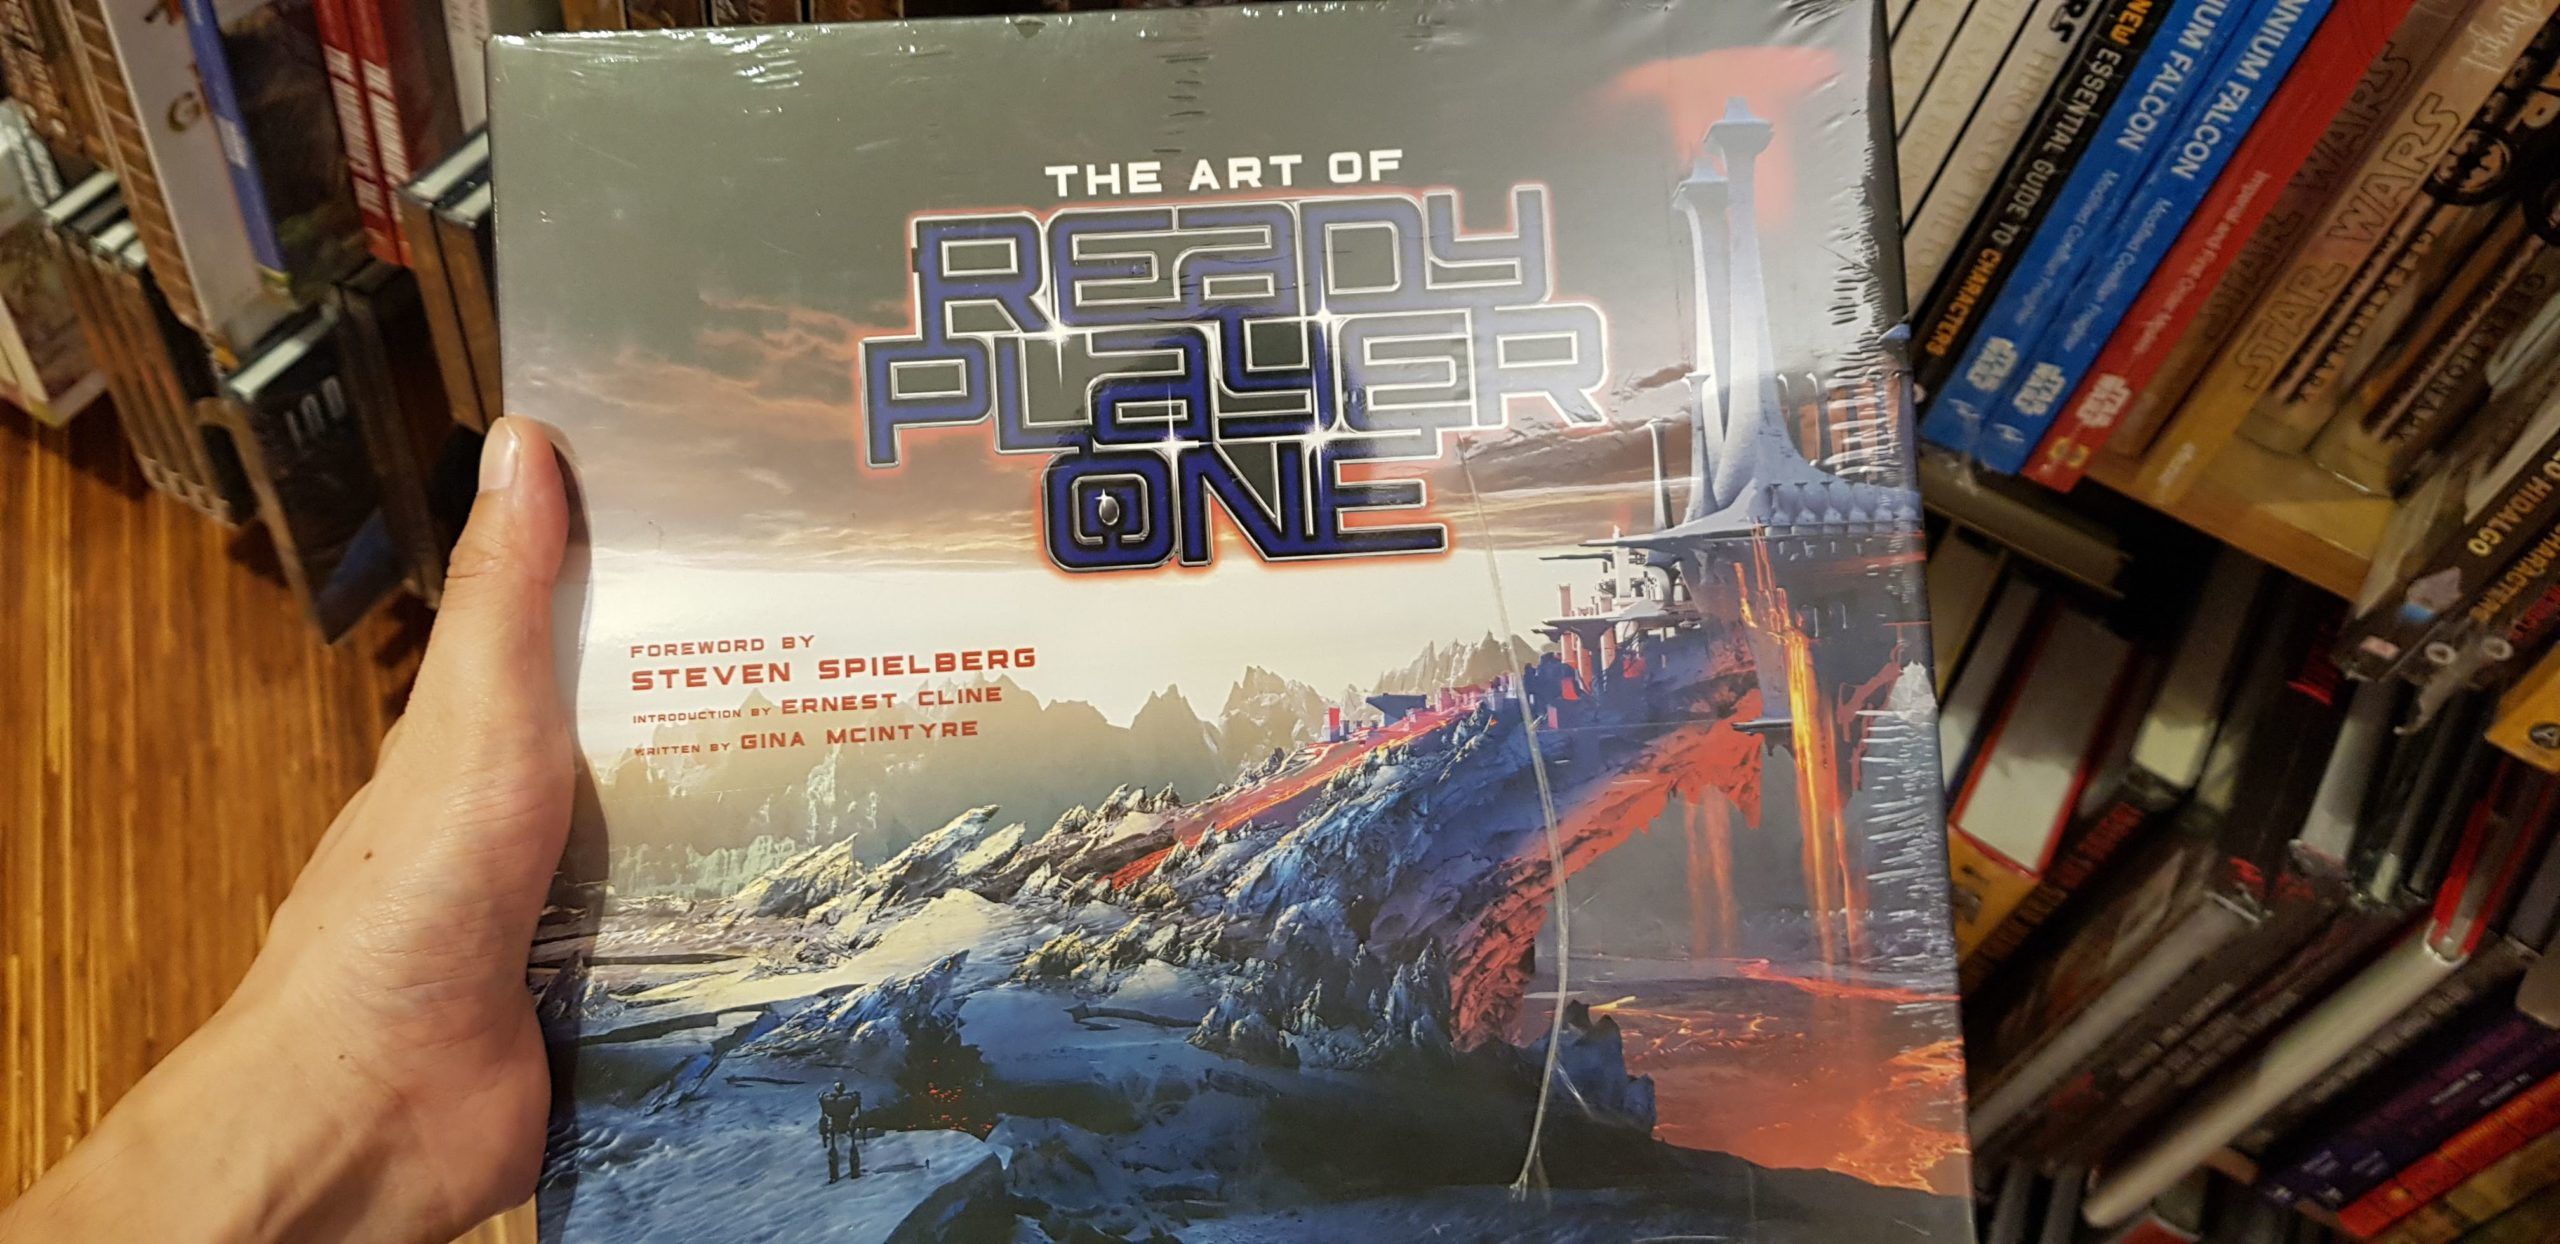 The art of Ready Player one book inspiration for industrial product design sketching